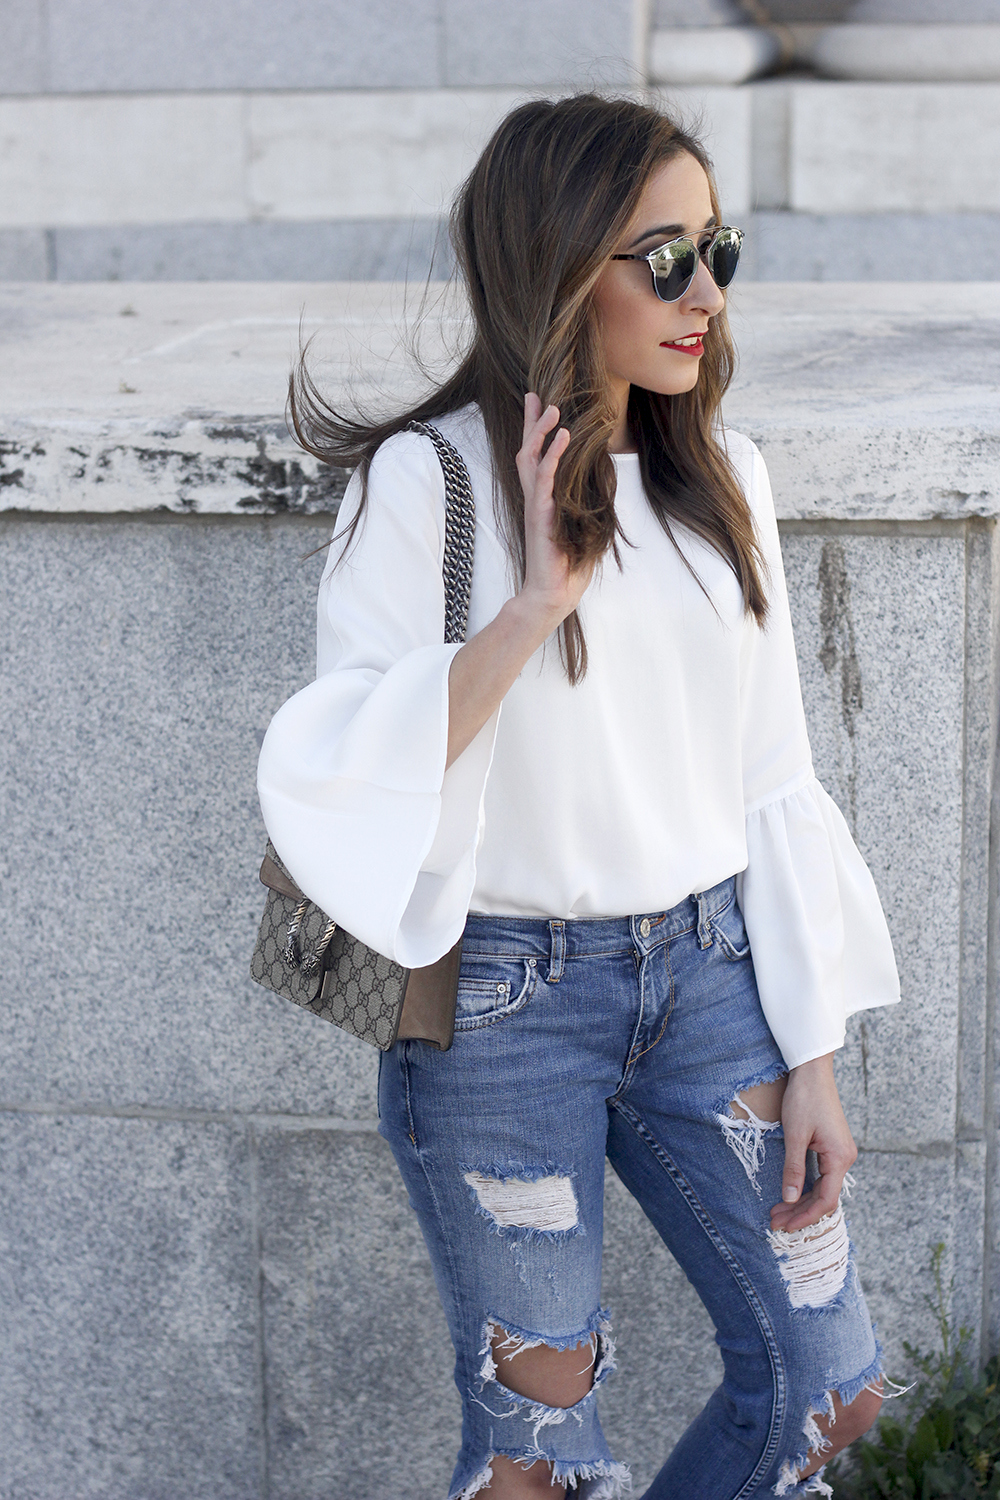 ripped keans gucci bag Jewel ballerinas uterqüe white blouse outfit style fashion02